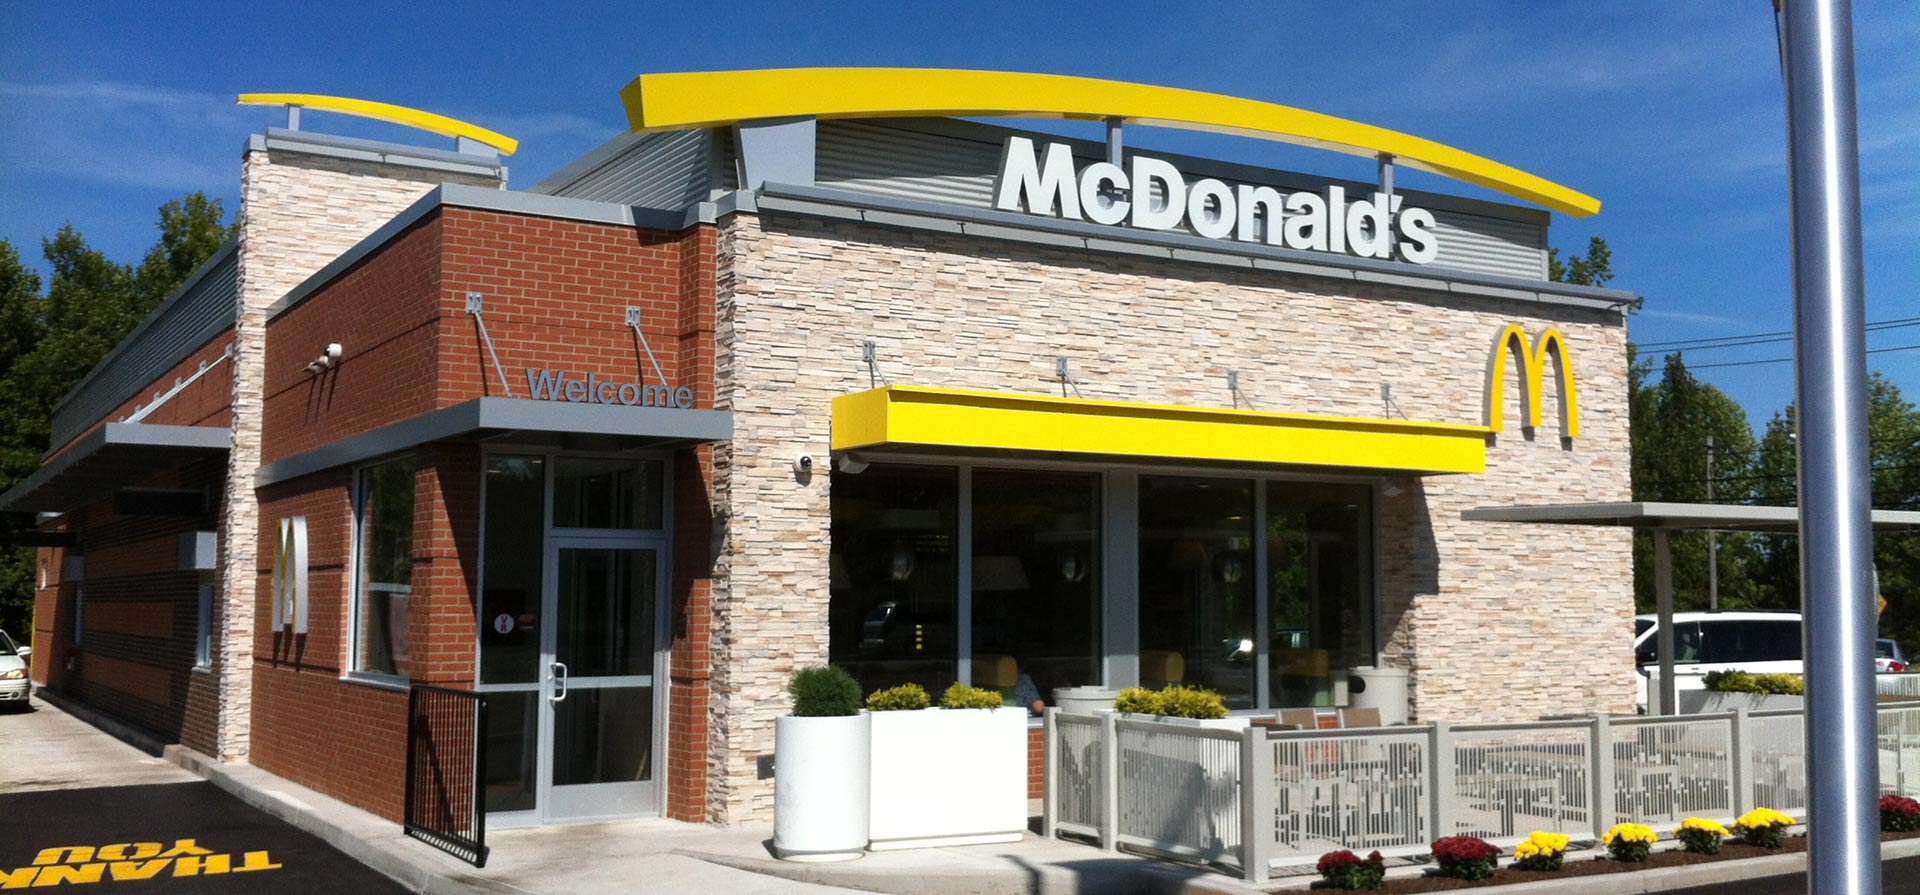 McDonalds Exterior front of buidling